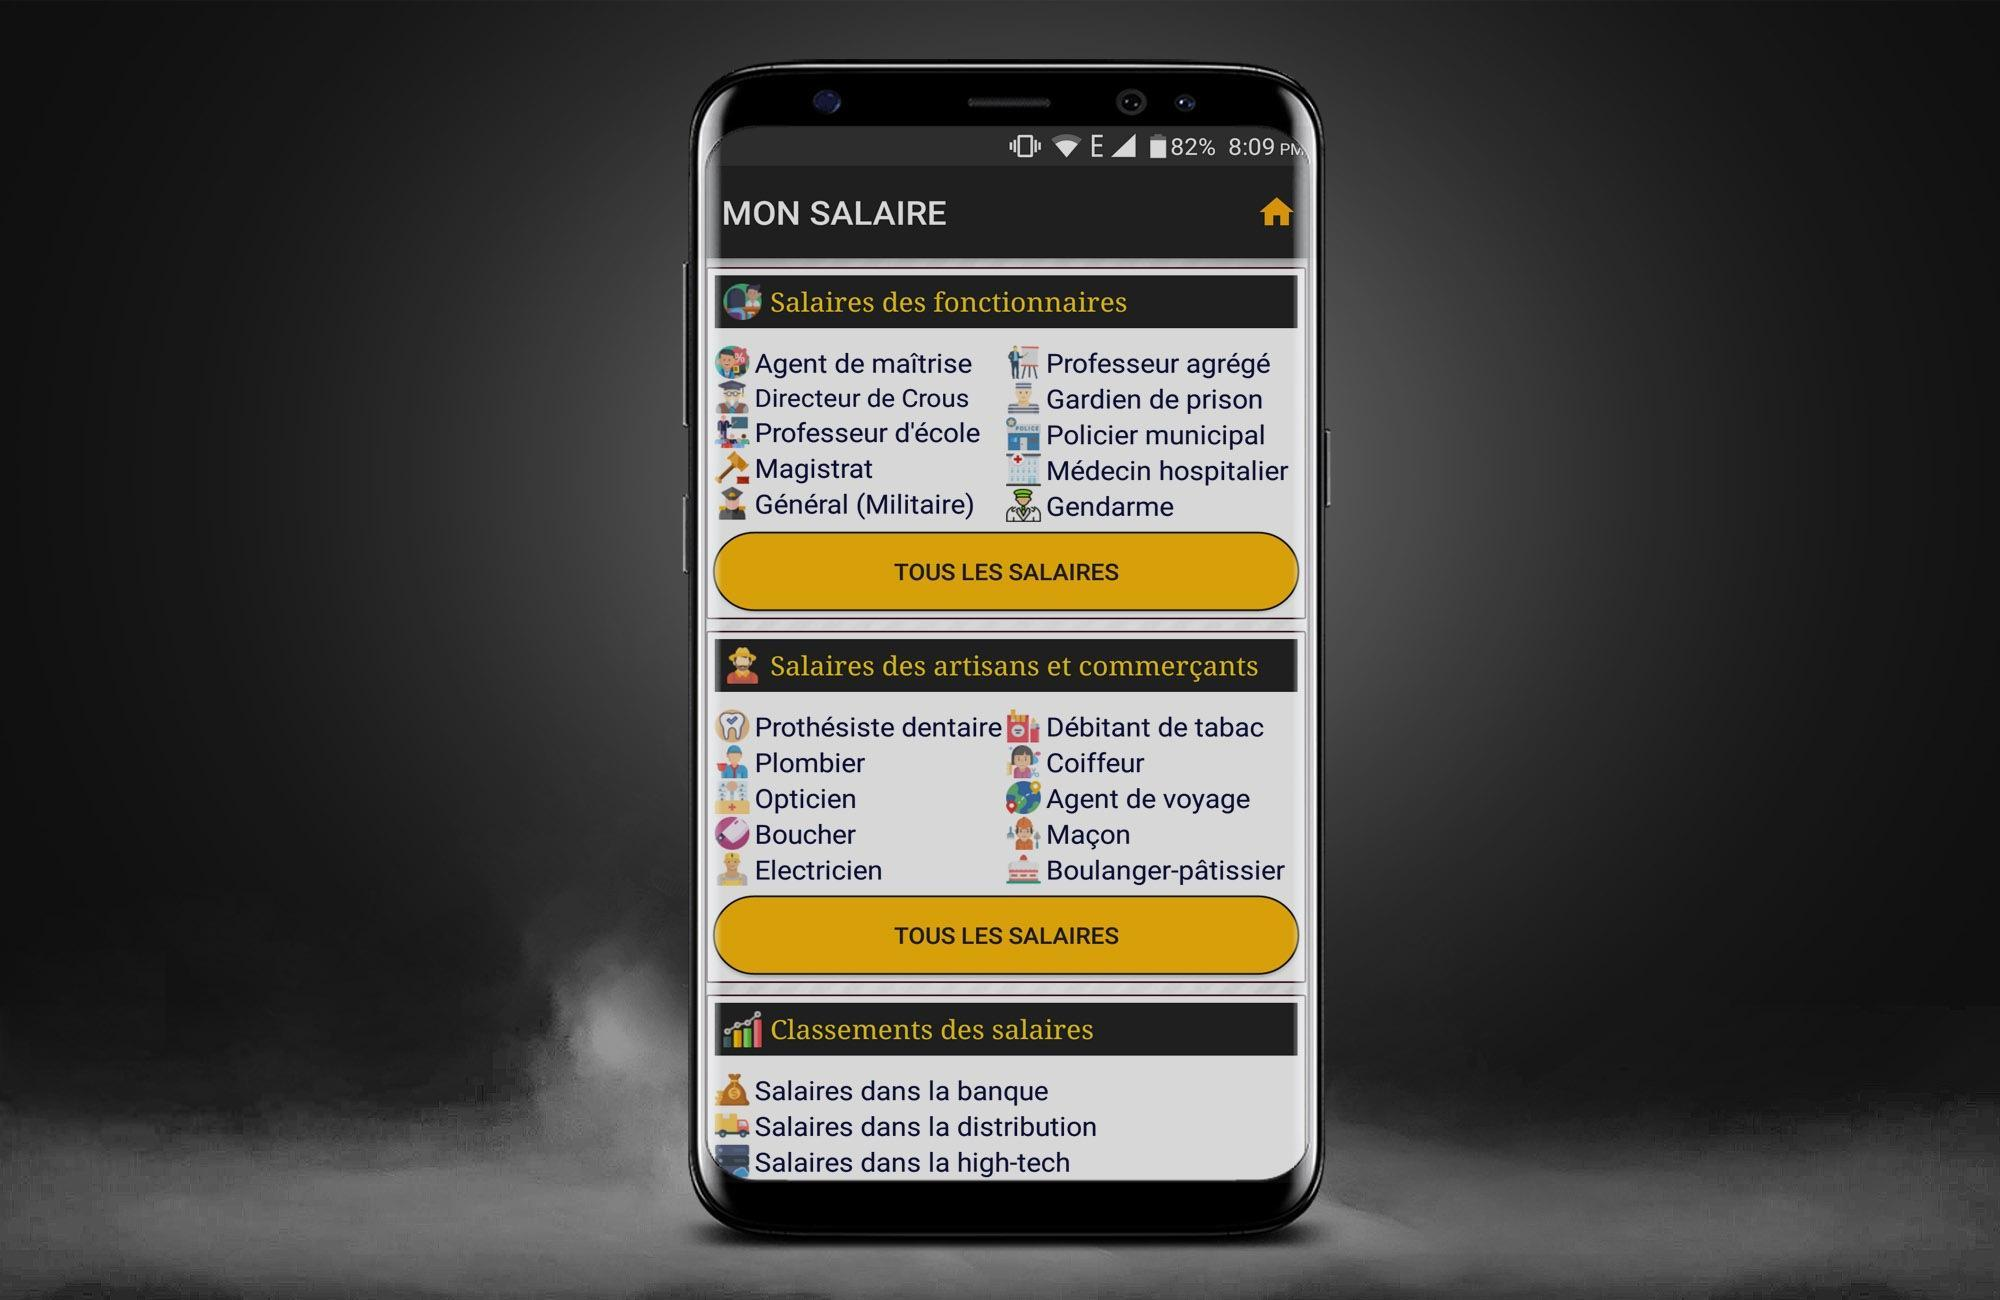 Mon Salaire For Android Apk Download